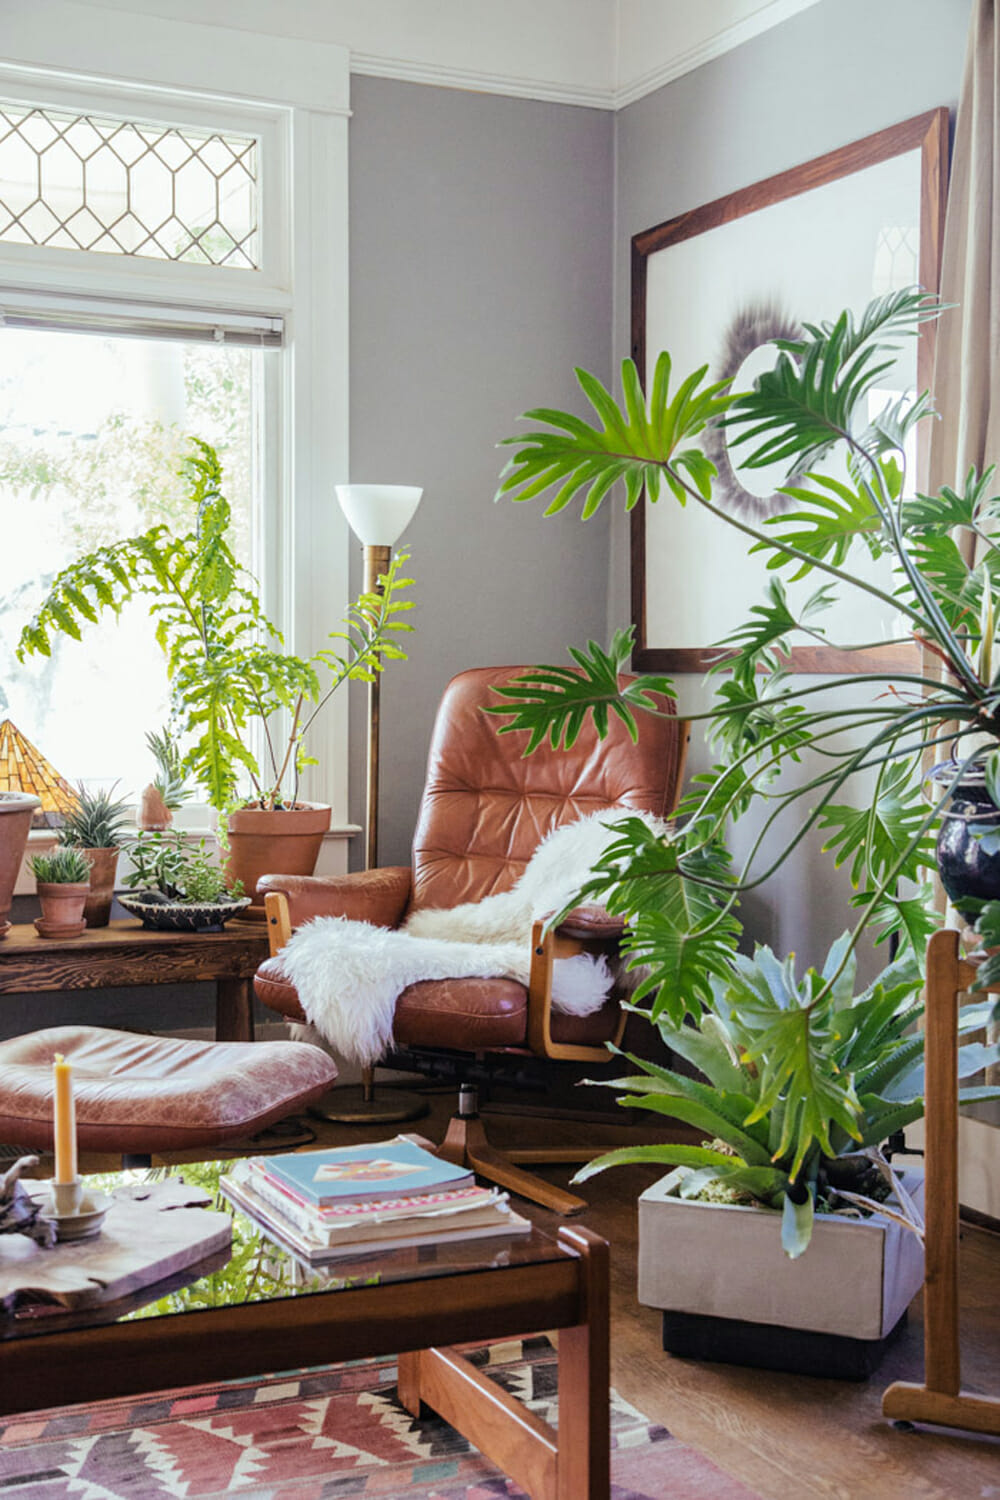 Decorating With Plants Modernize